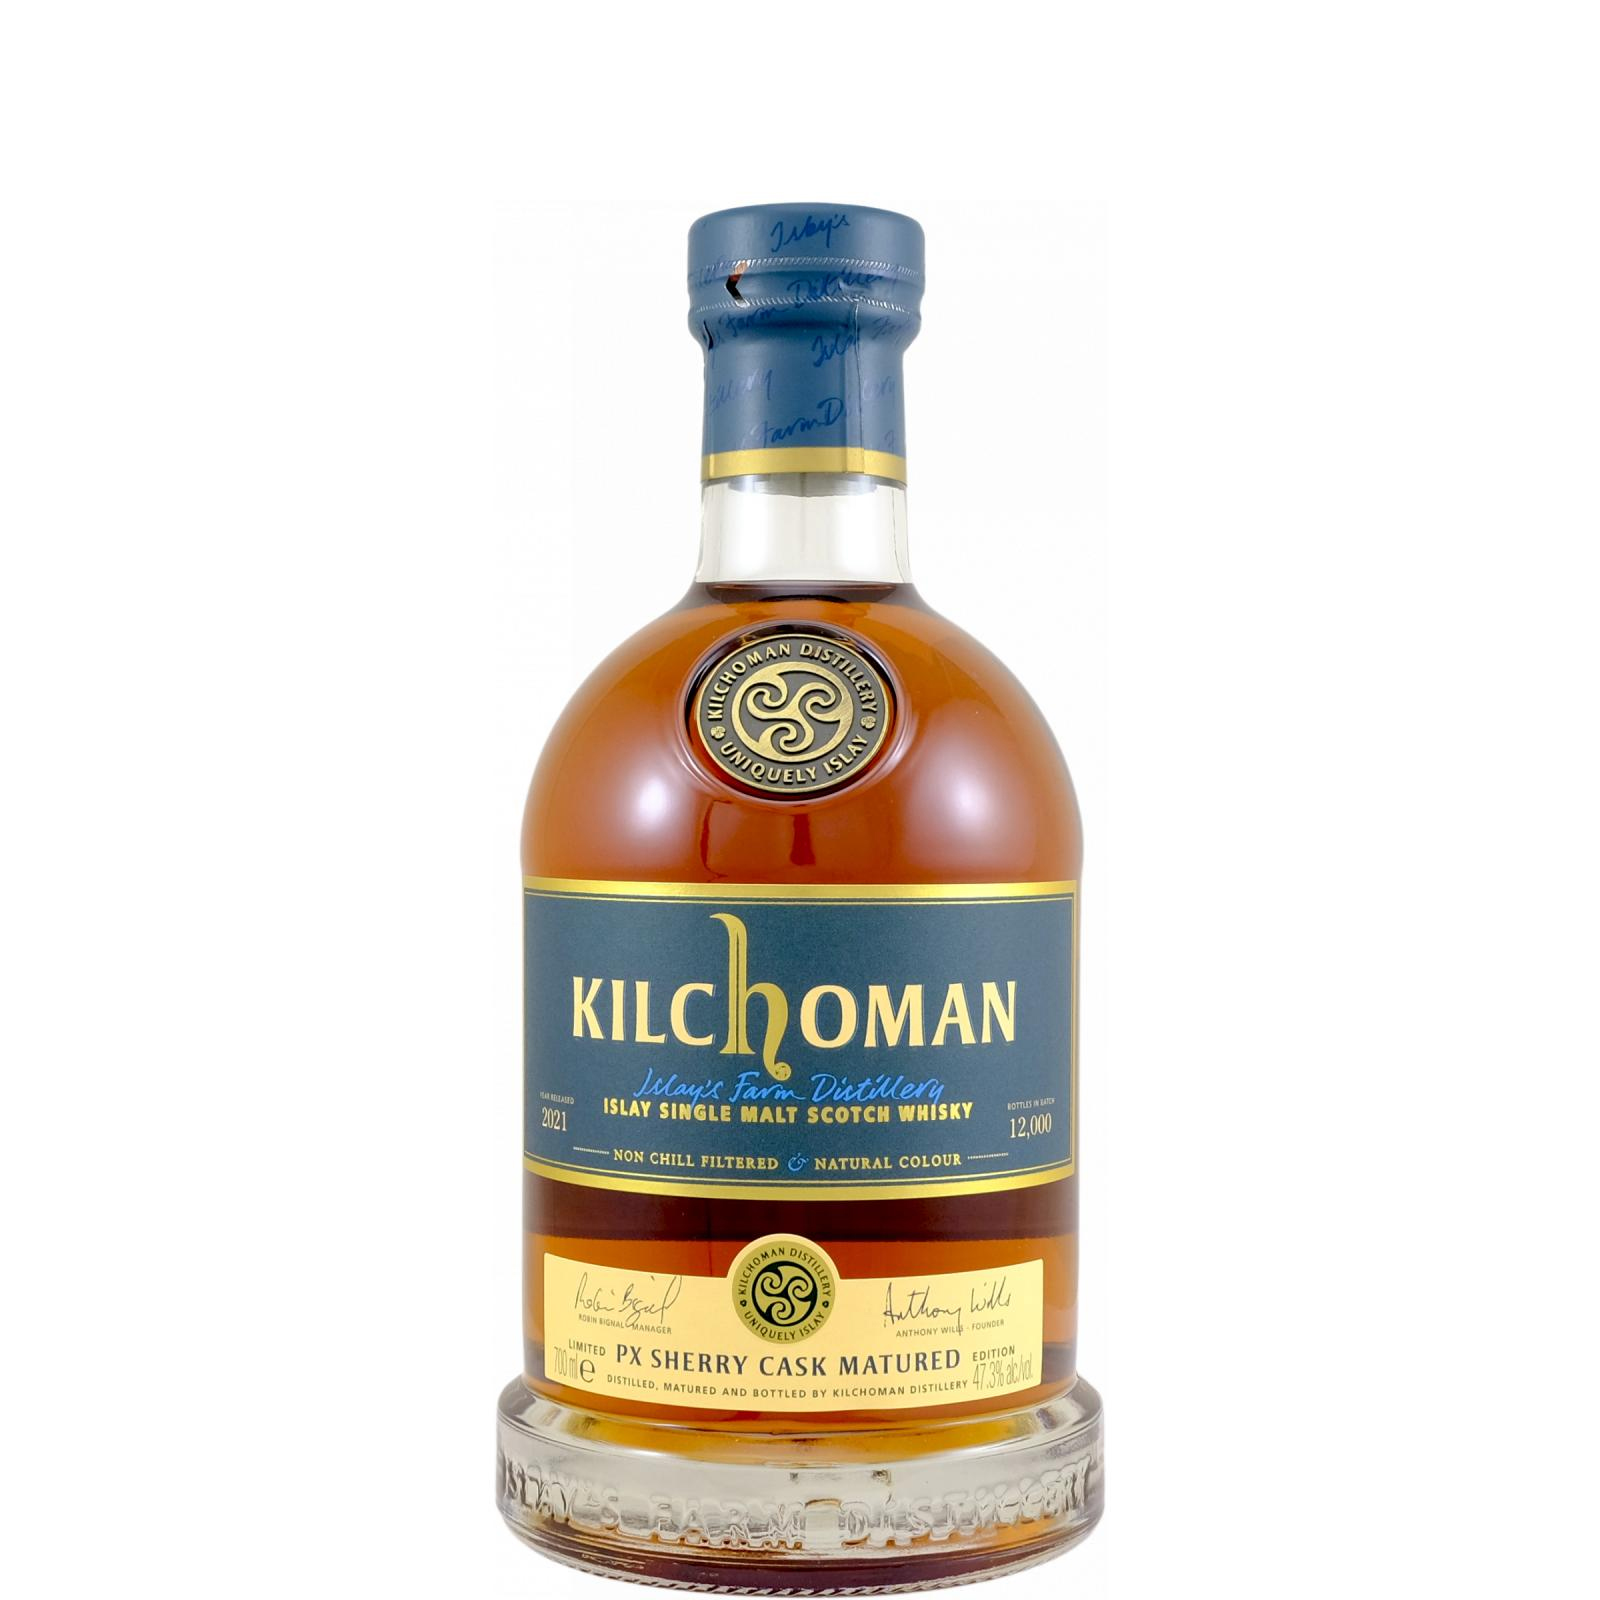 Read more about the article Kilchoman PX Sherry Cask Matured